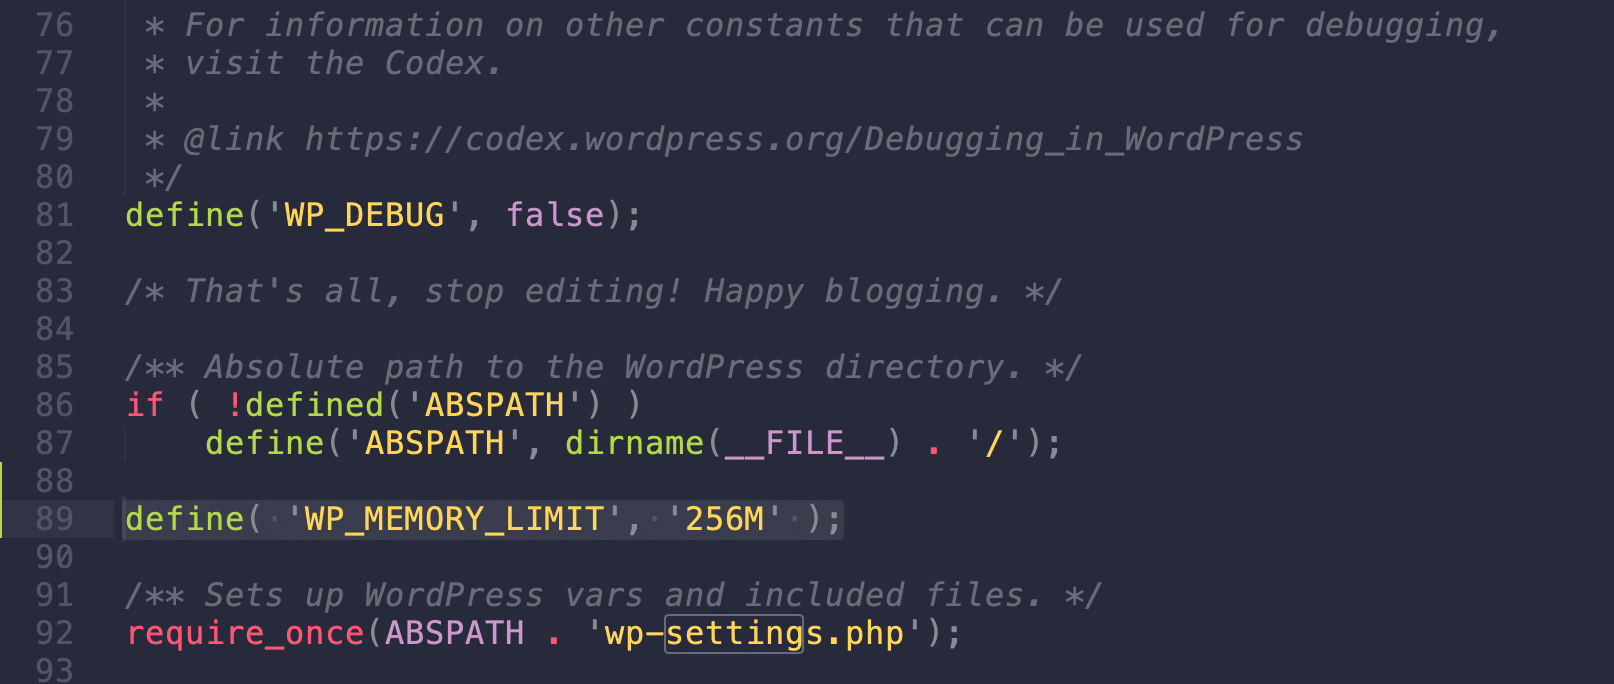 WP_MEMORY_LIMIT in wp-config.php